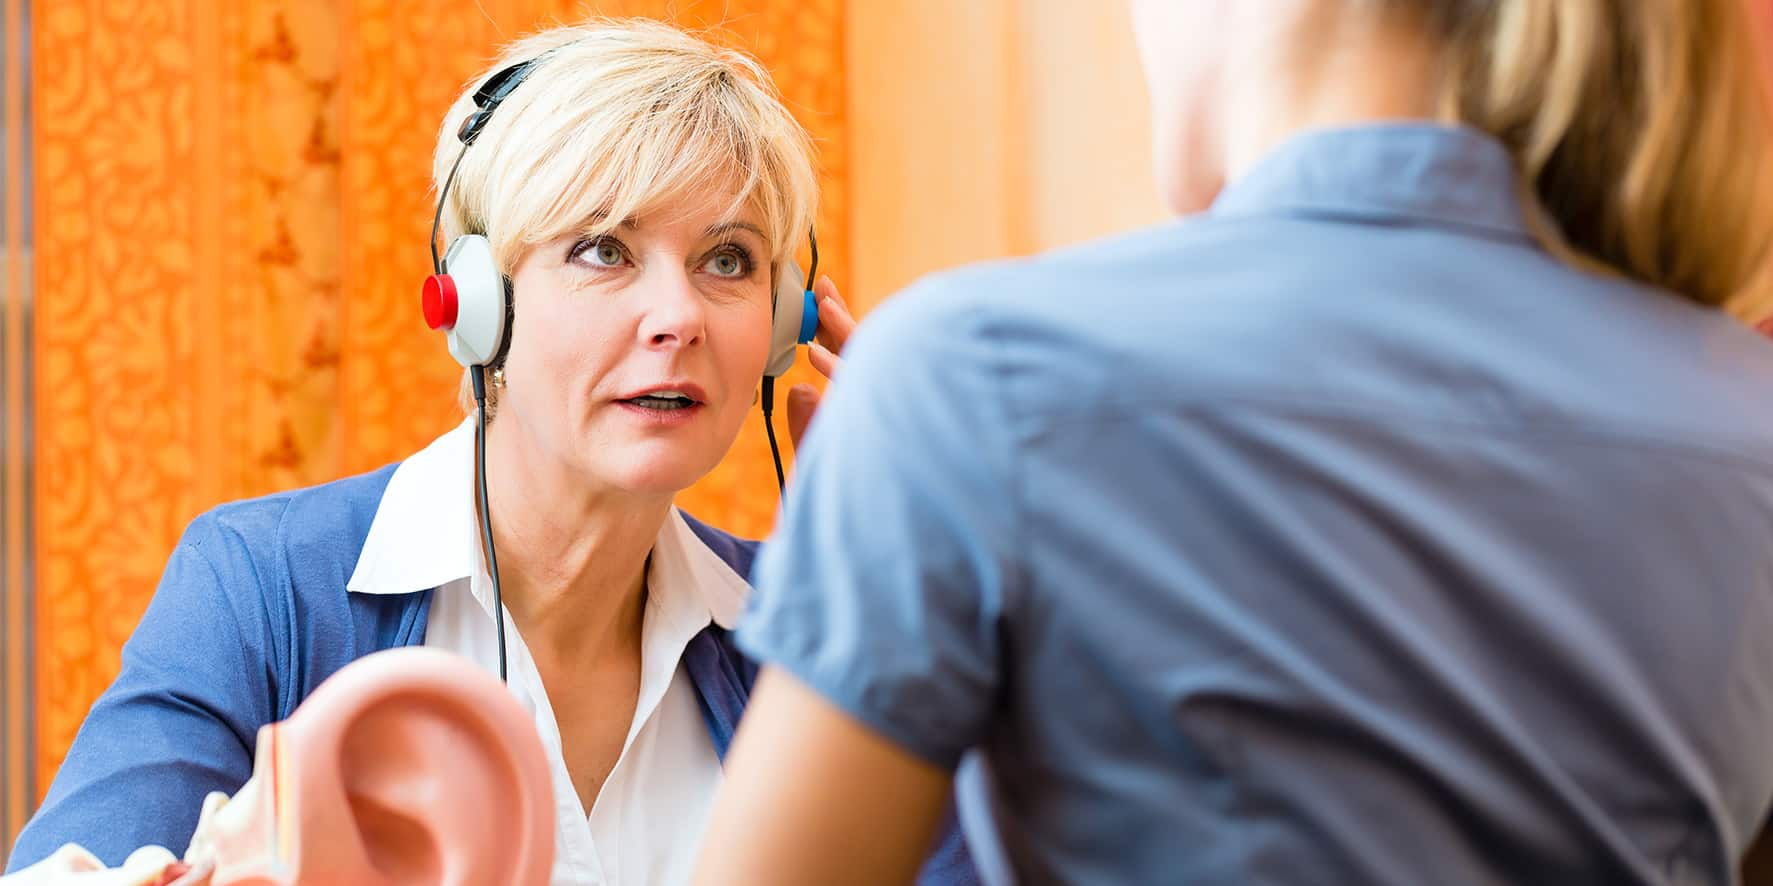 A woman listens through headphones as part of a hearing test